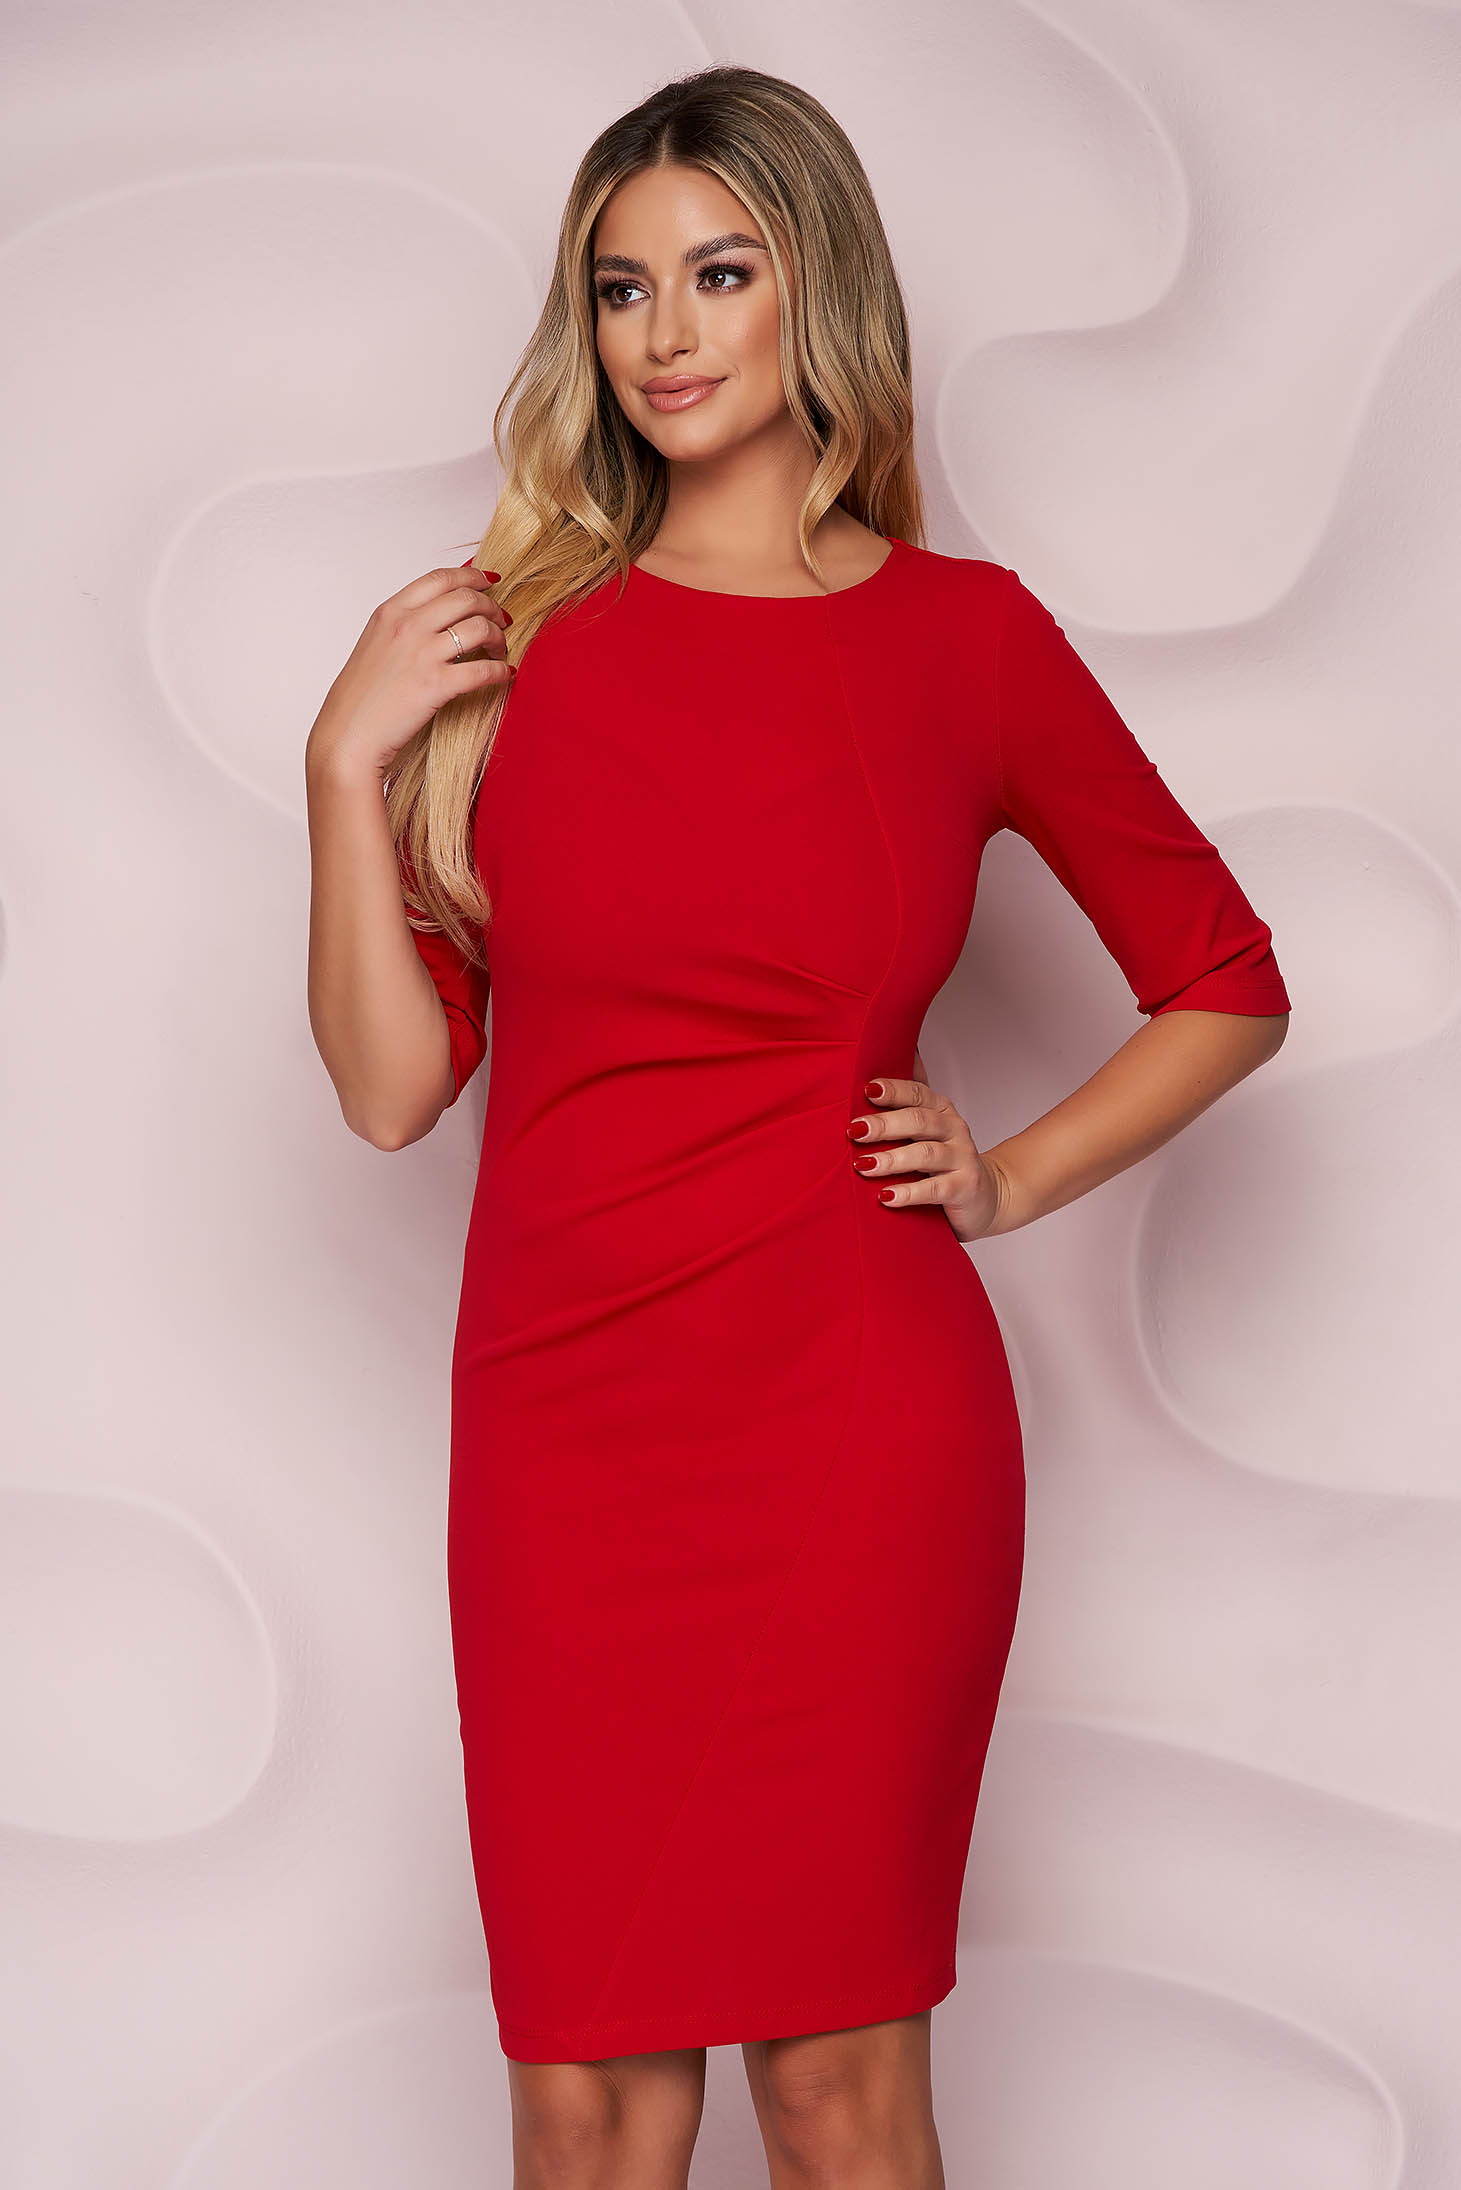 Red dress pencil midi office thin fabric from elastic fabric with 3/4 sleeves